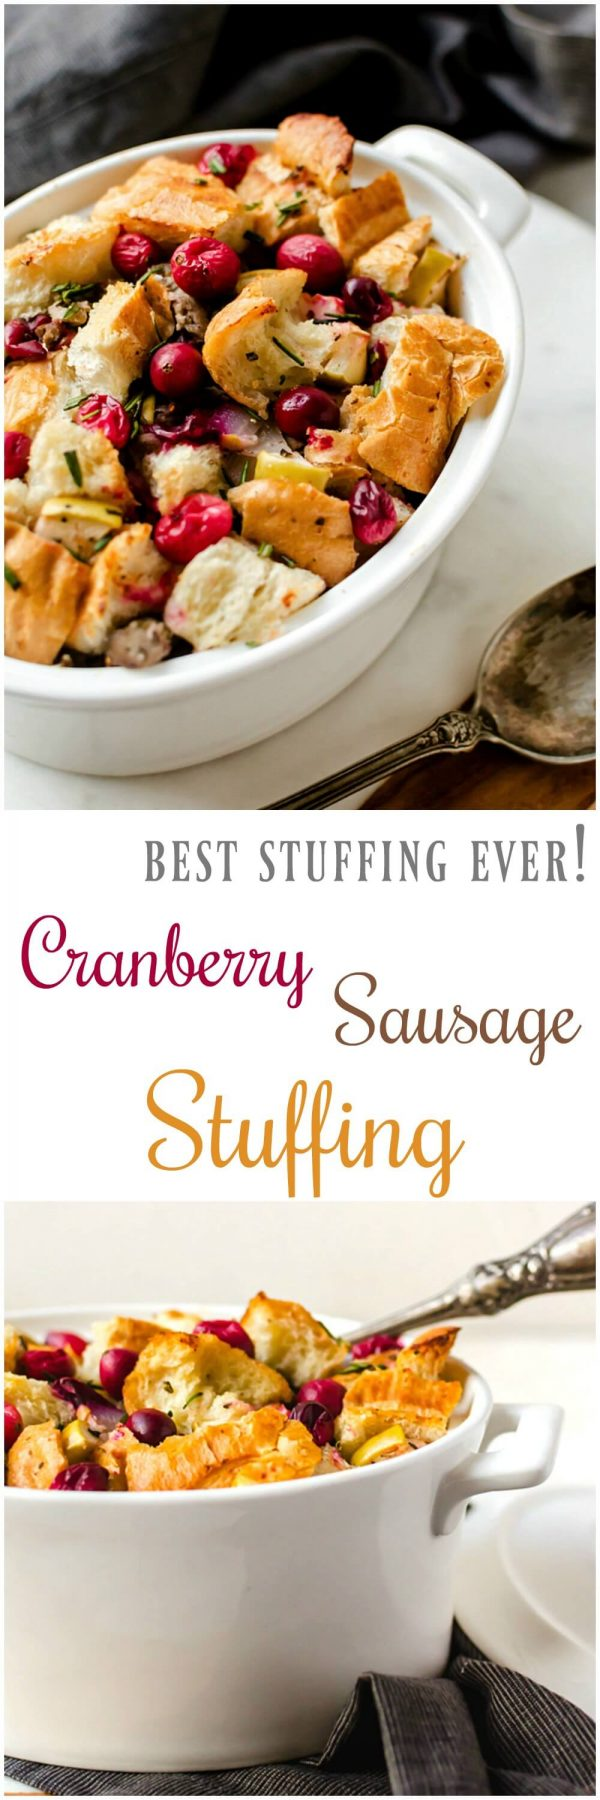 Cranberry Sausage Stuffing. Whether it's baked in a pan or stuffed inside of a holiday turkey, this is the best stuffing I've ever eaten! #Thanksgiving #stuffing #dressing #recipe